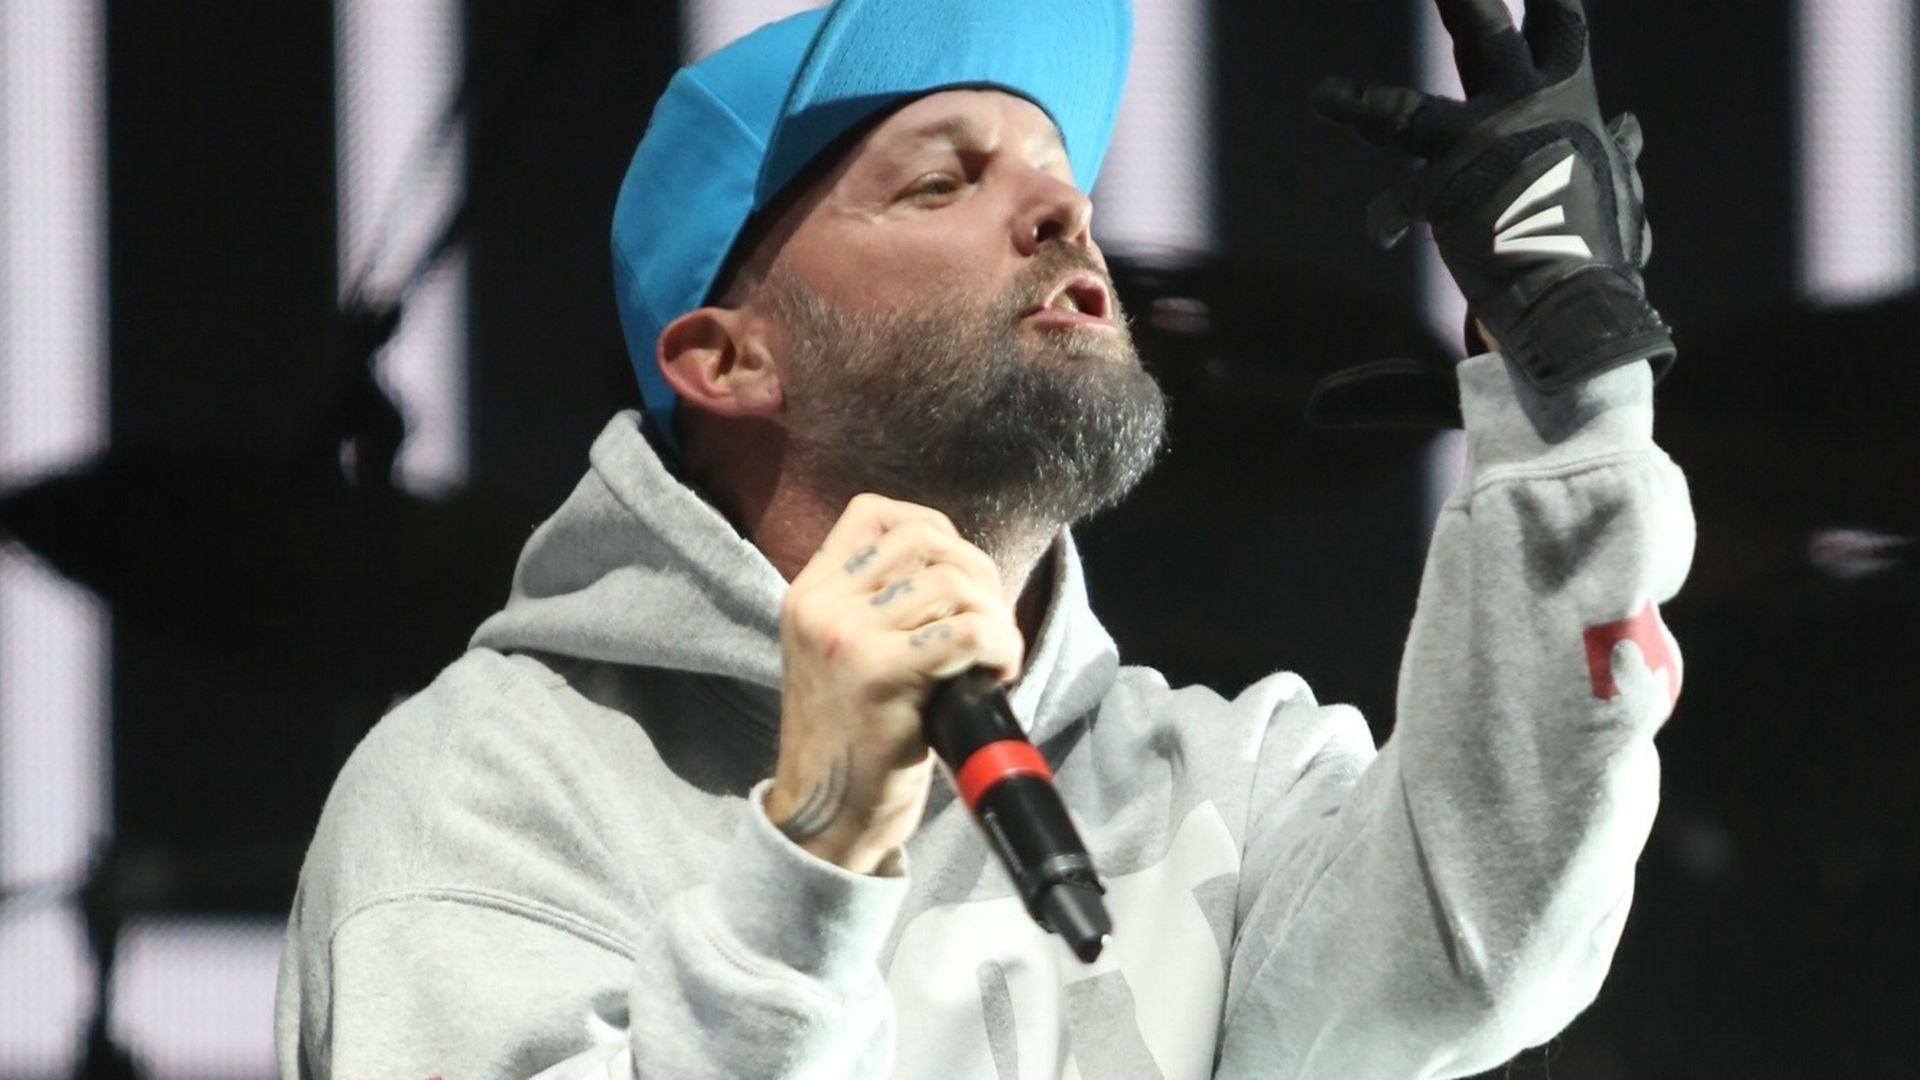 Fred Durst Wallpapers Images Photos Pictures Backgrounds 1920x1080